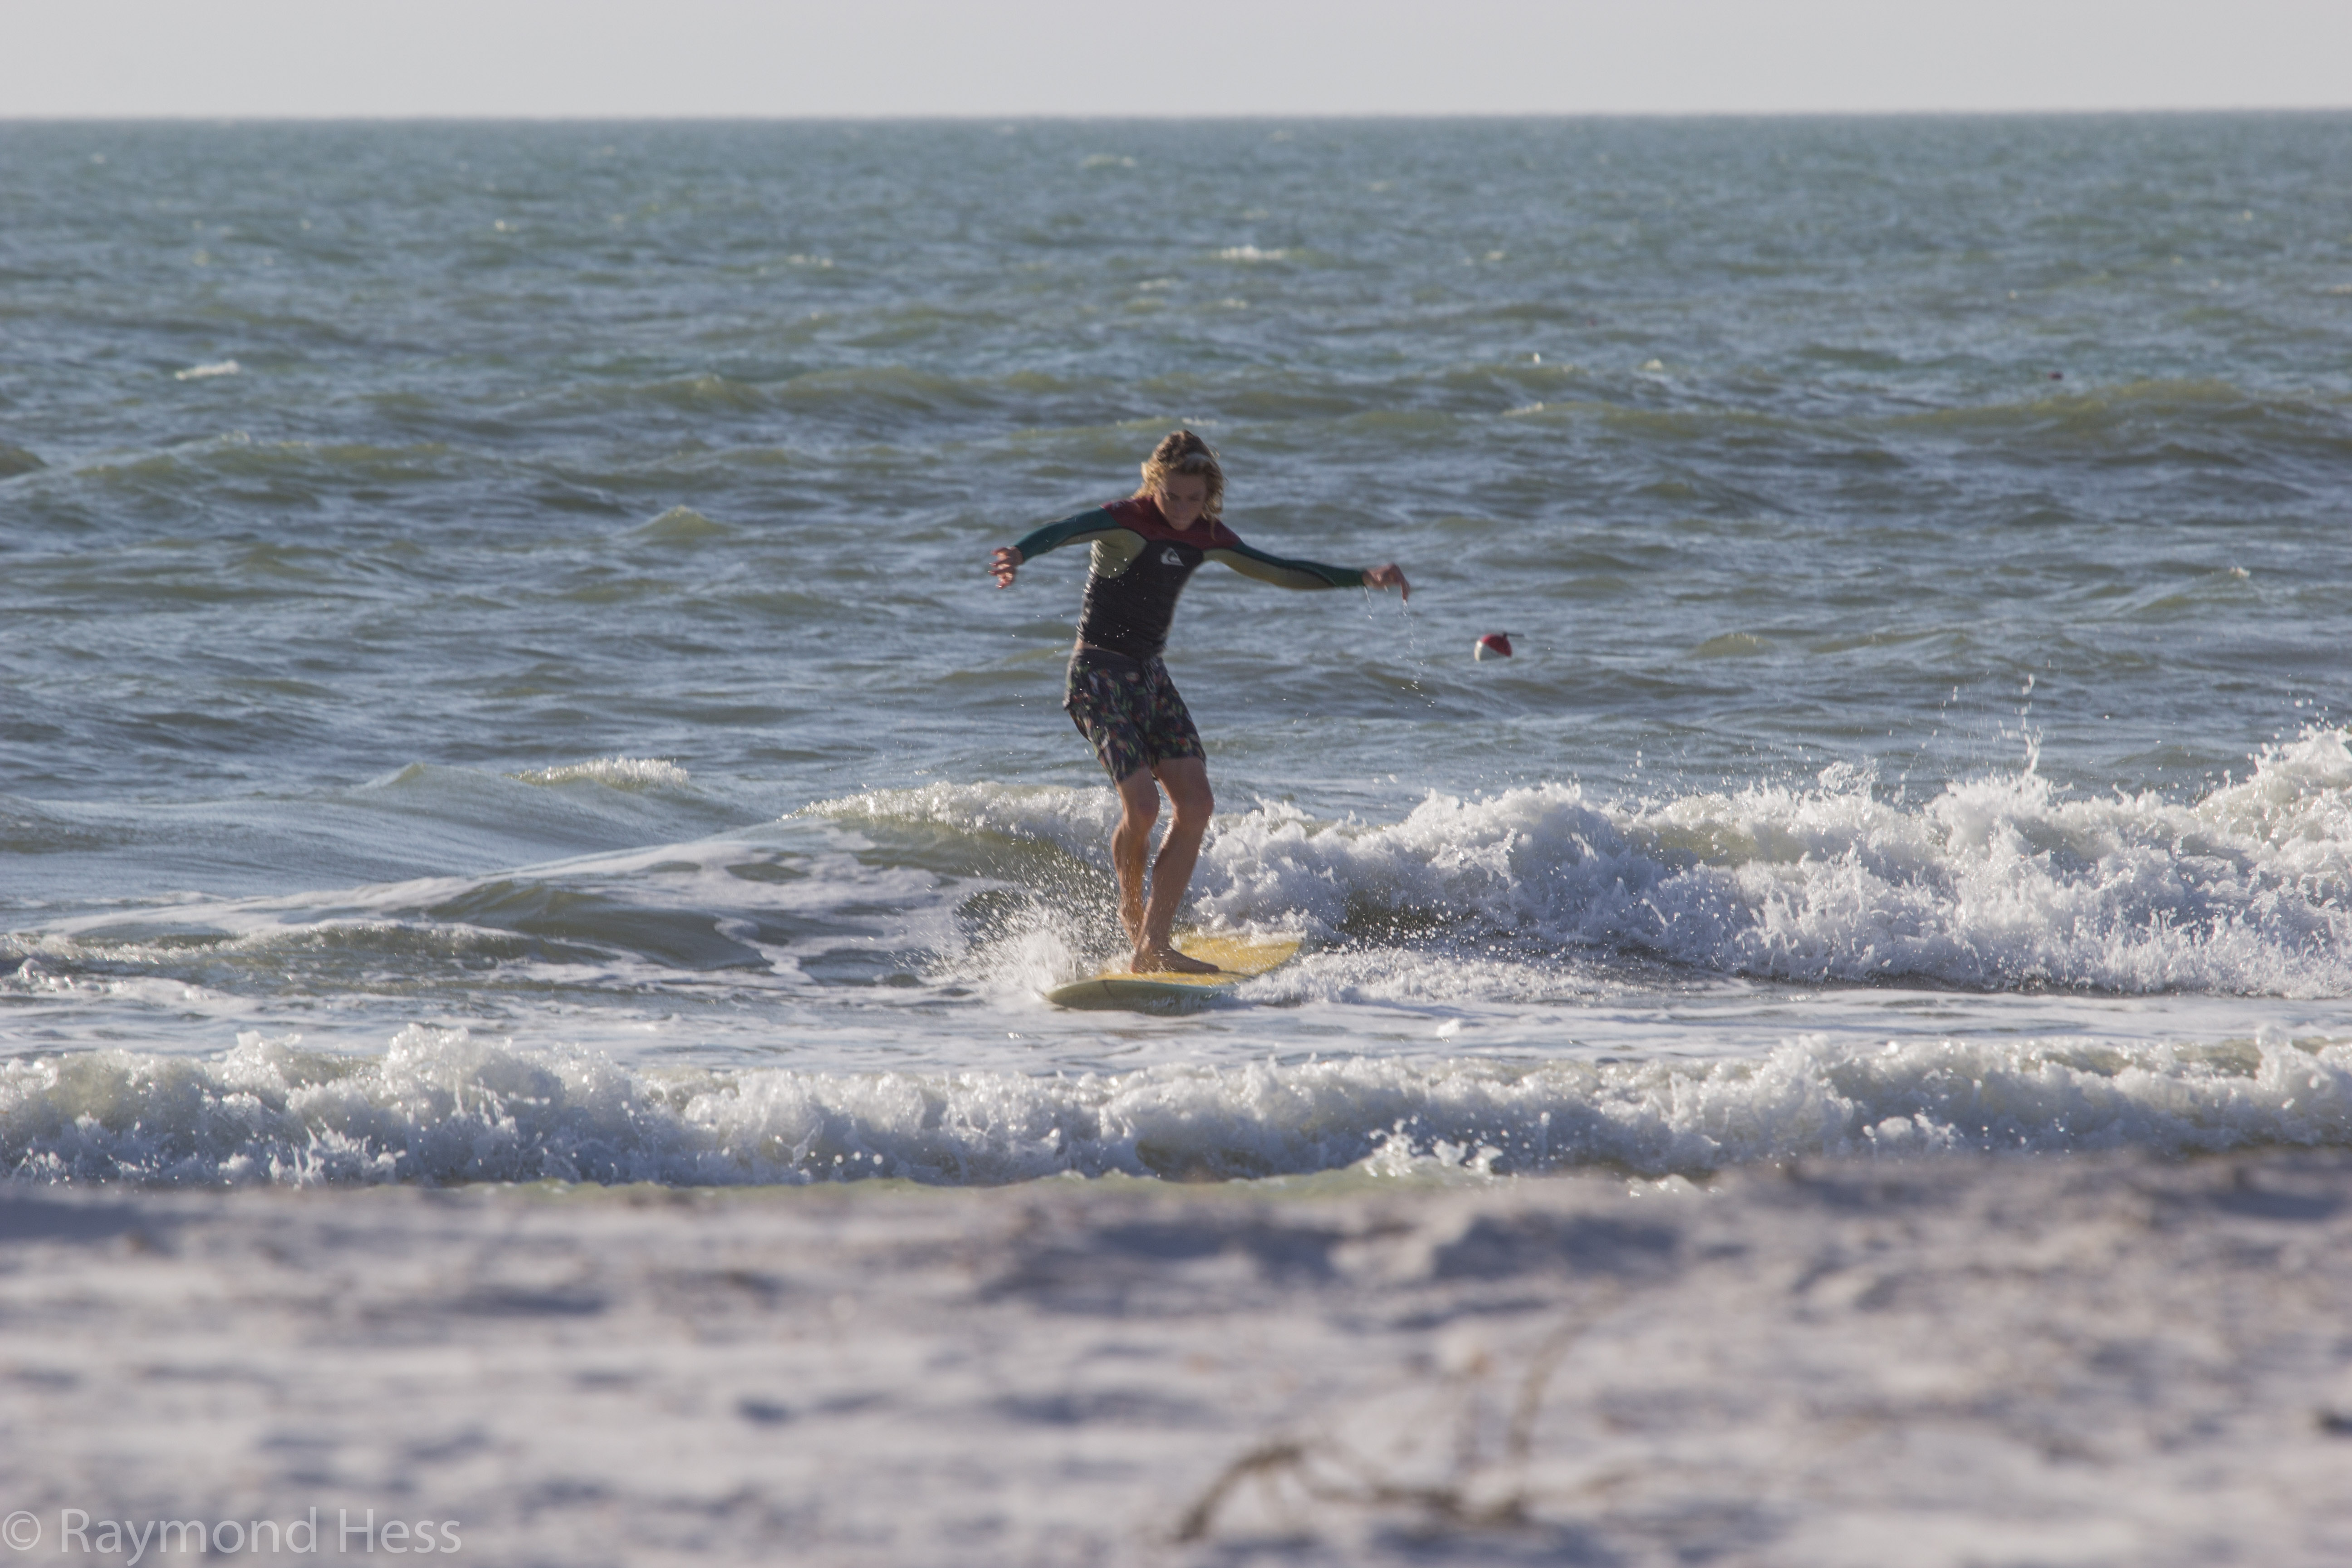 Honeymoon island surfing gallery surfingthegulf honeymoon island surfing gallery nvjuhfo Image collections